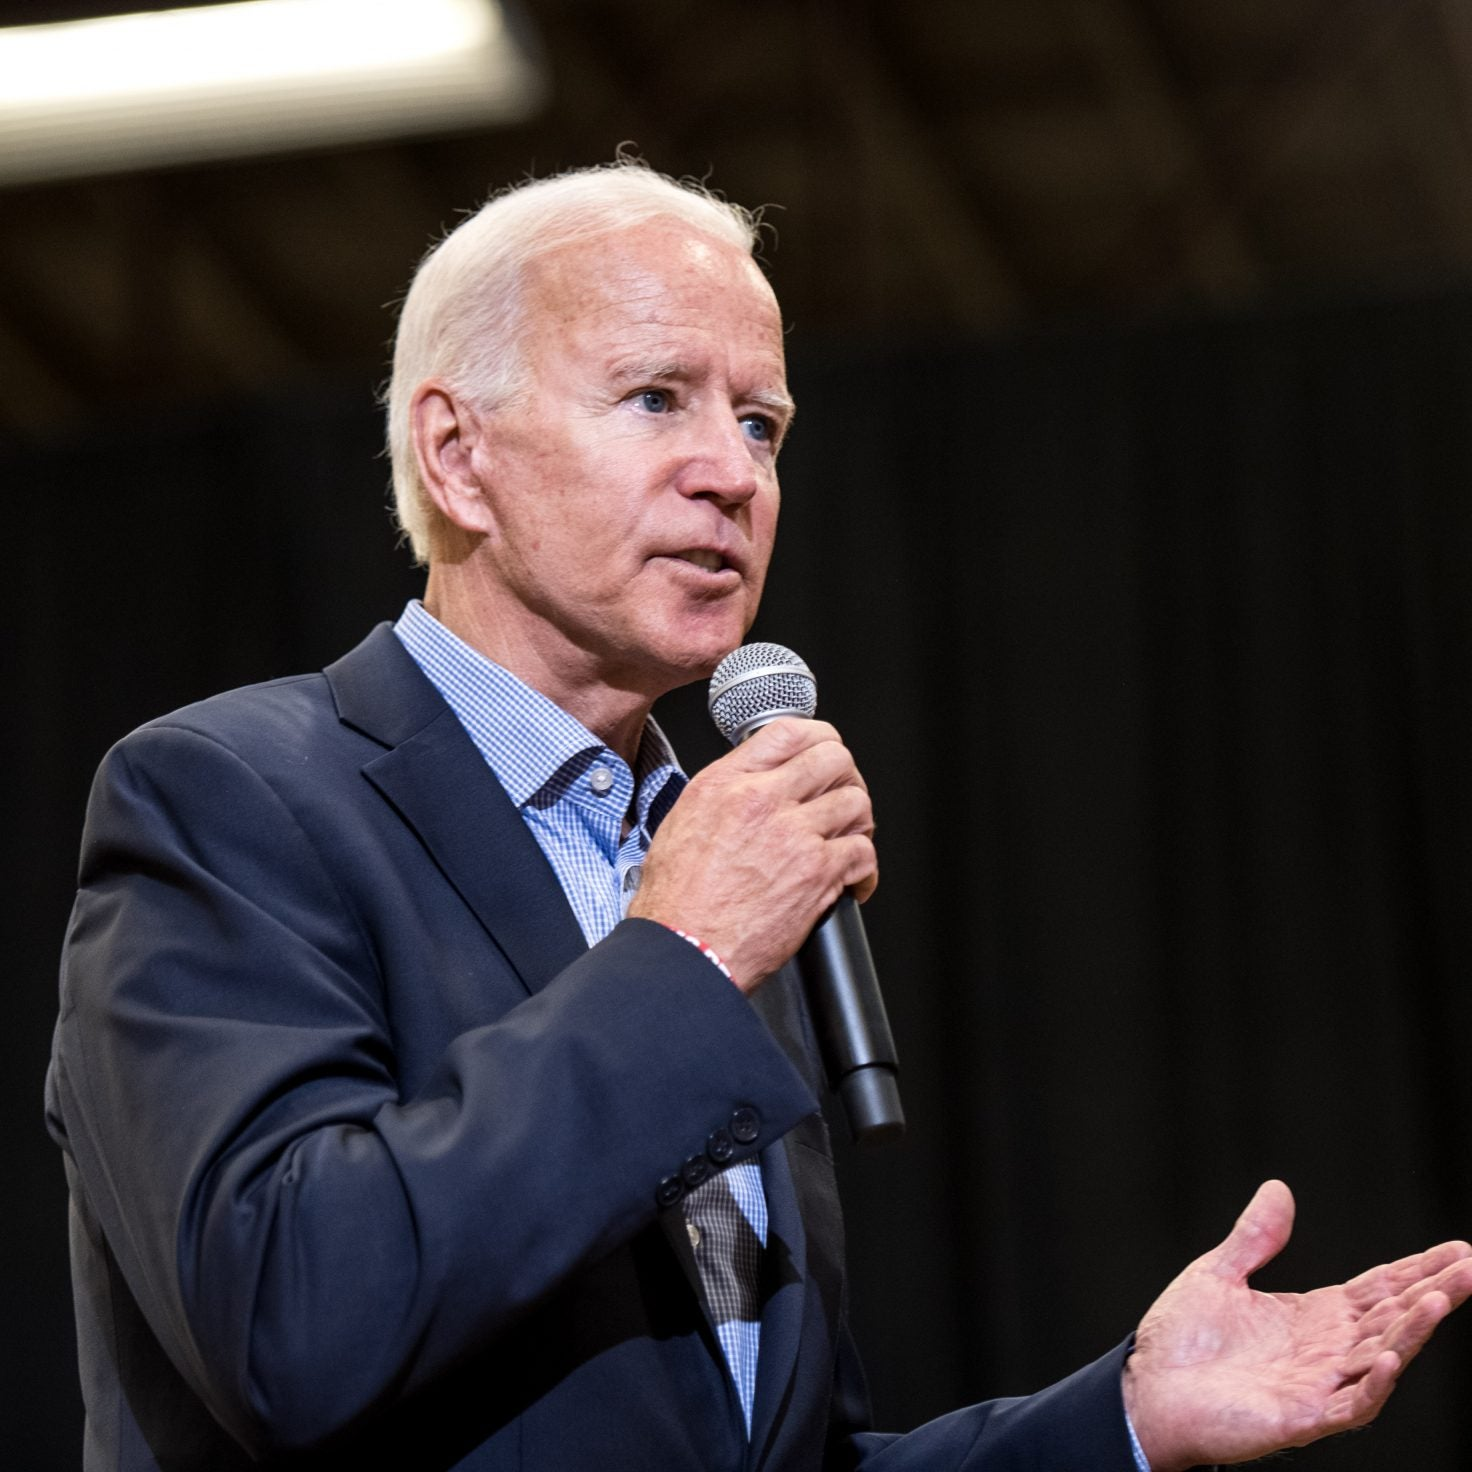 Biden On Gaffes, Inaccuracies: 'Details Are Irrelevant' To Policy Decisions